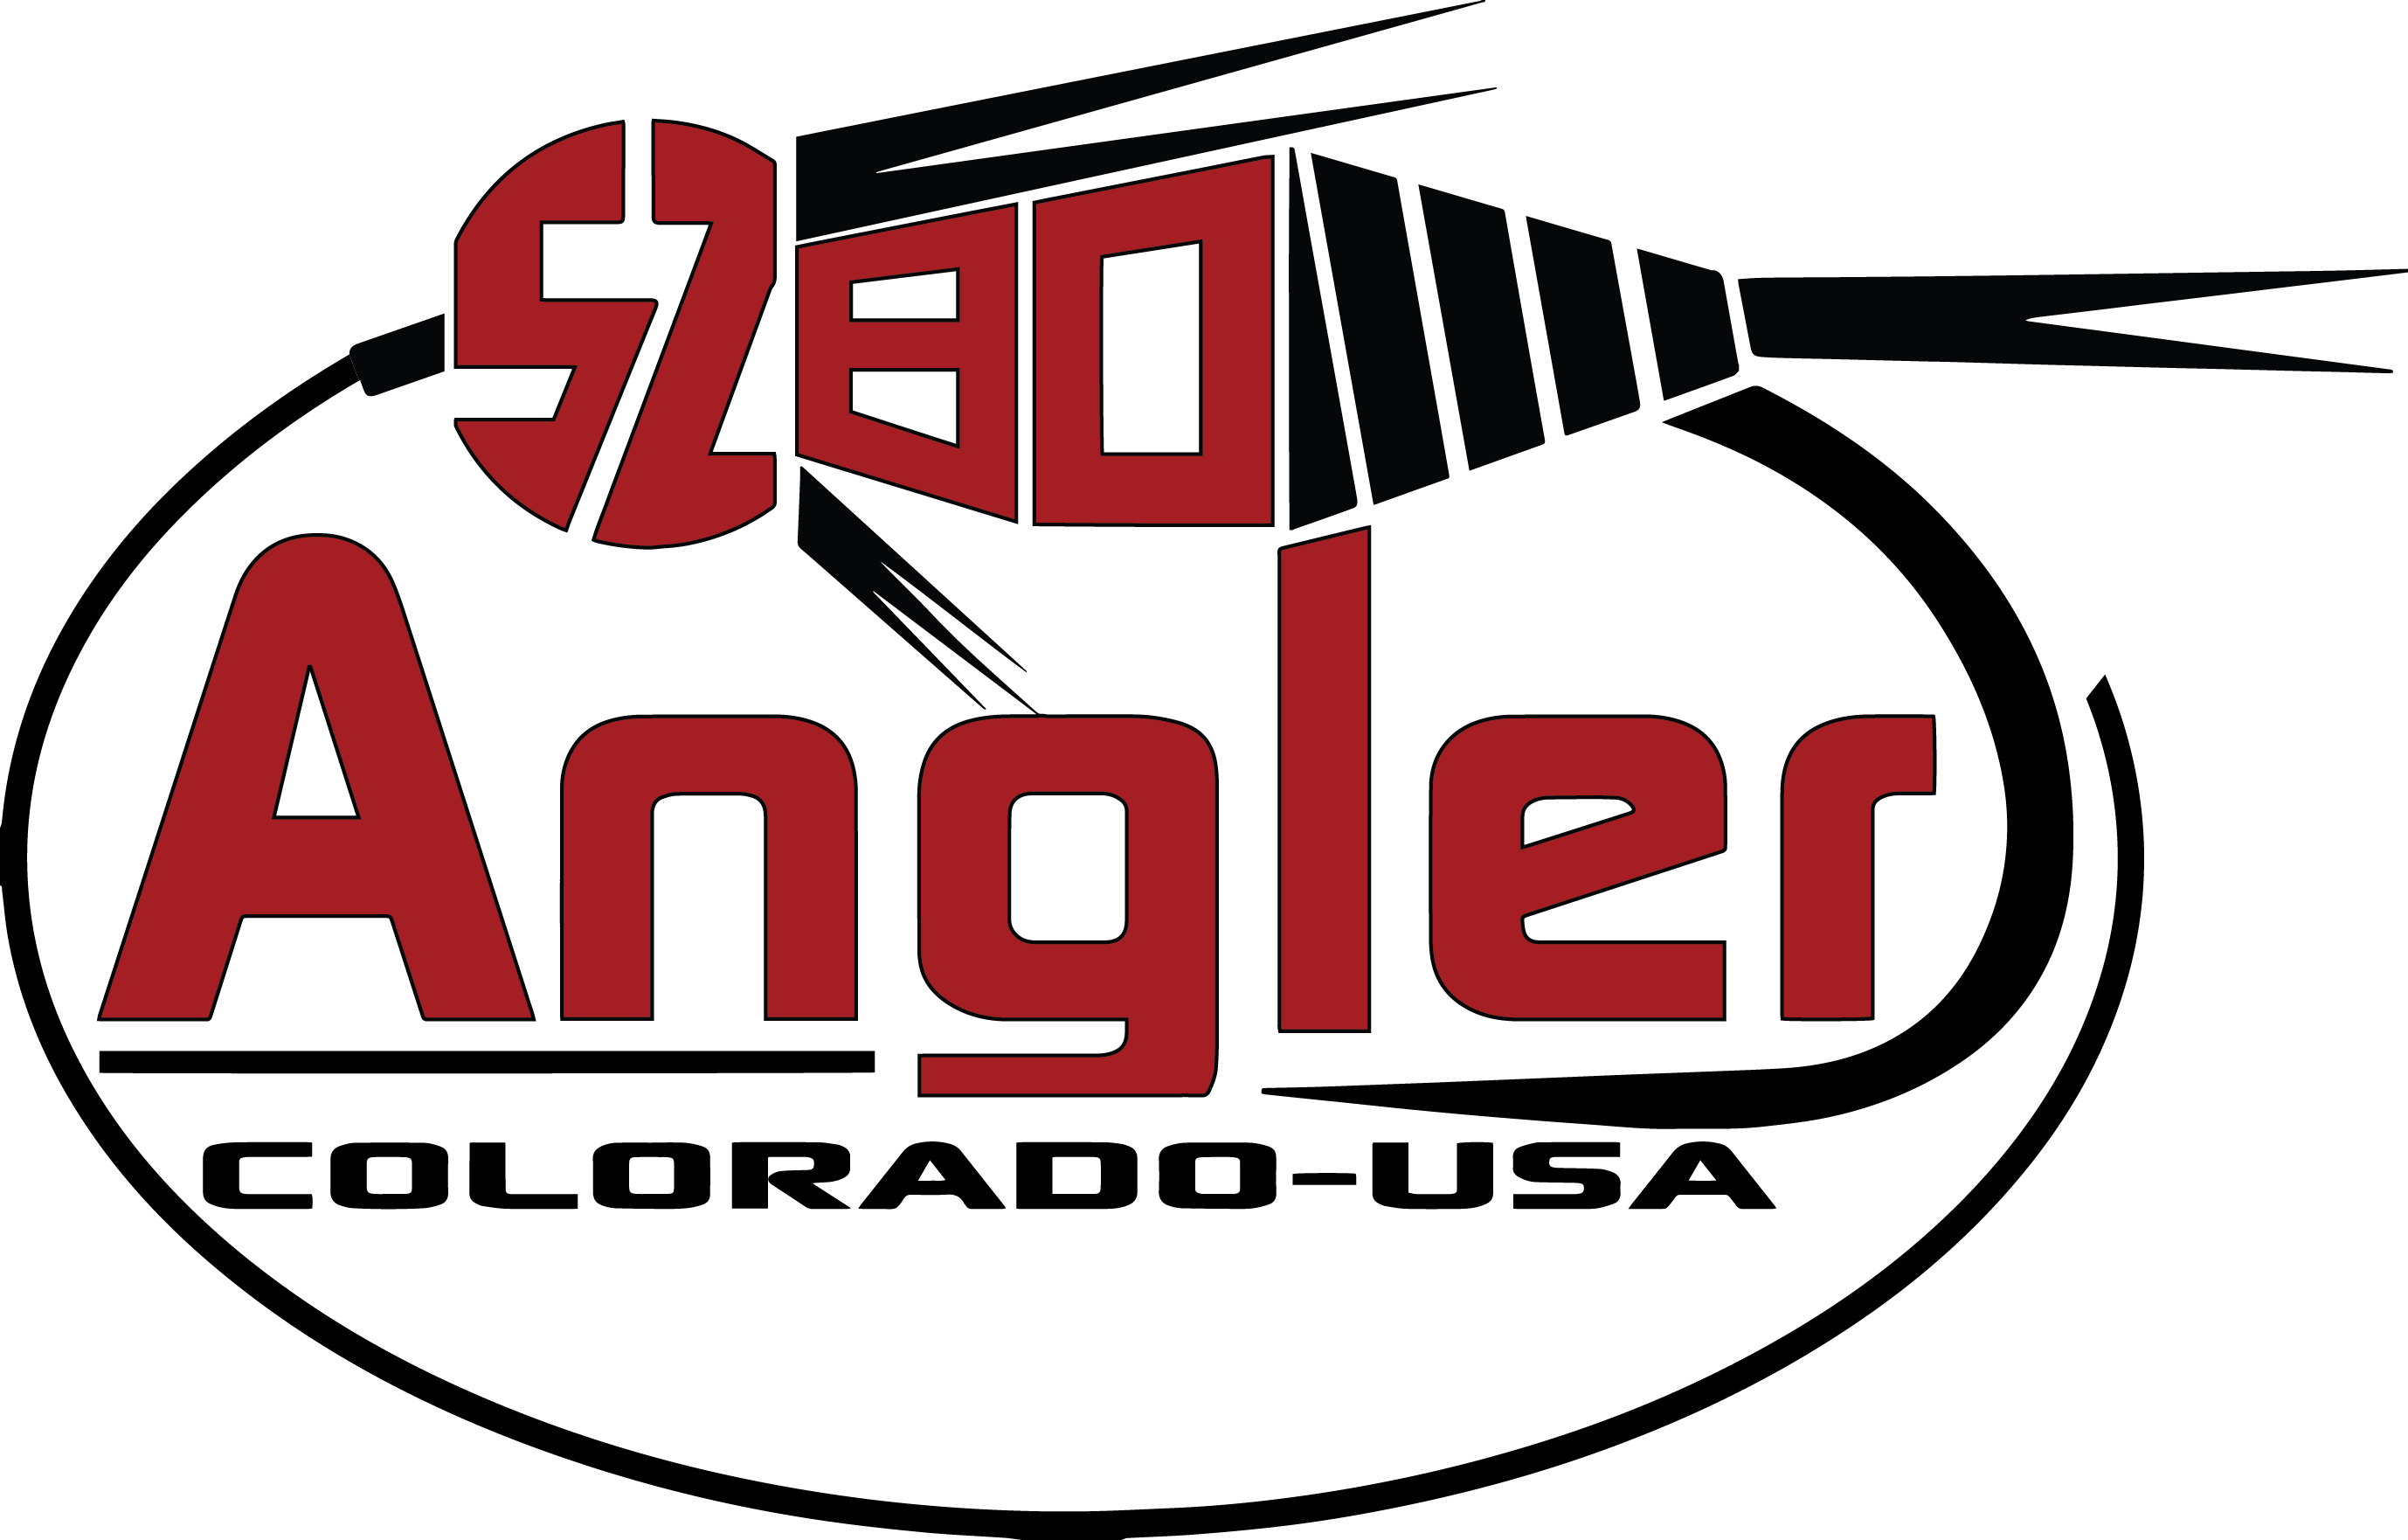 Colorado Fly Fishing Art - 5280 Angler Logo